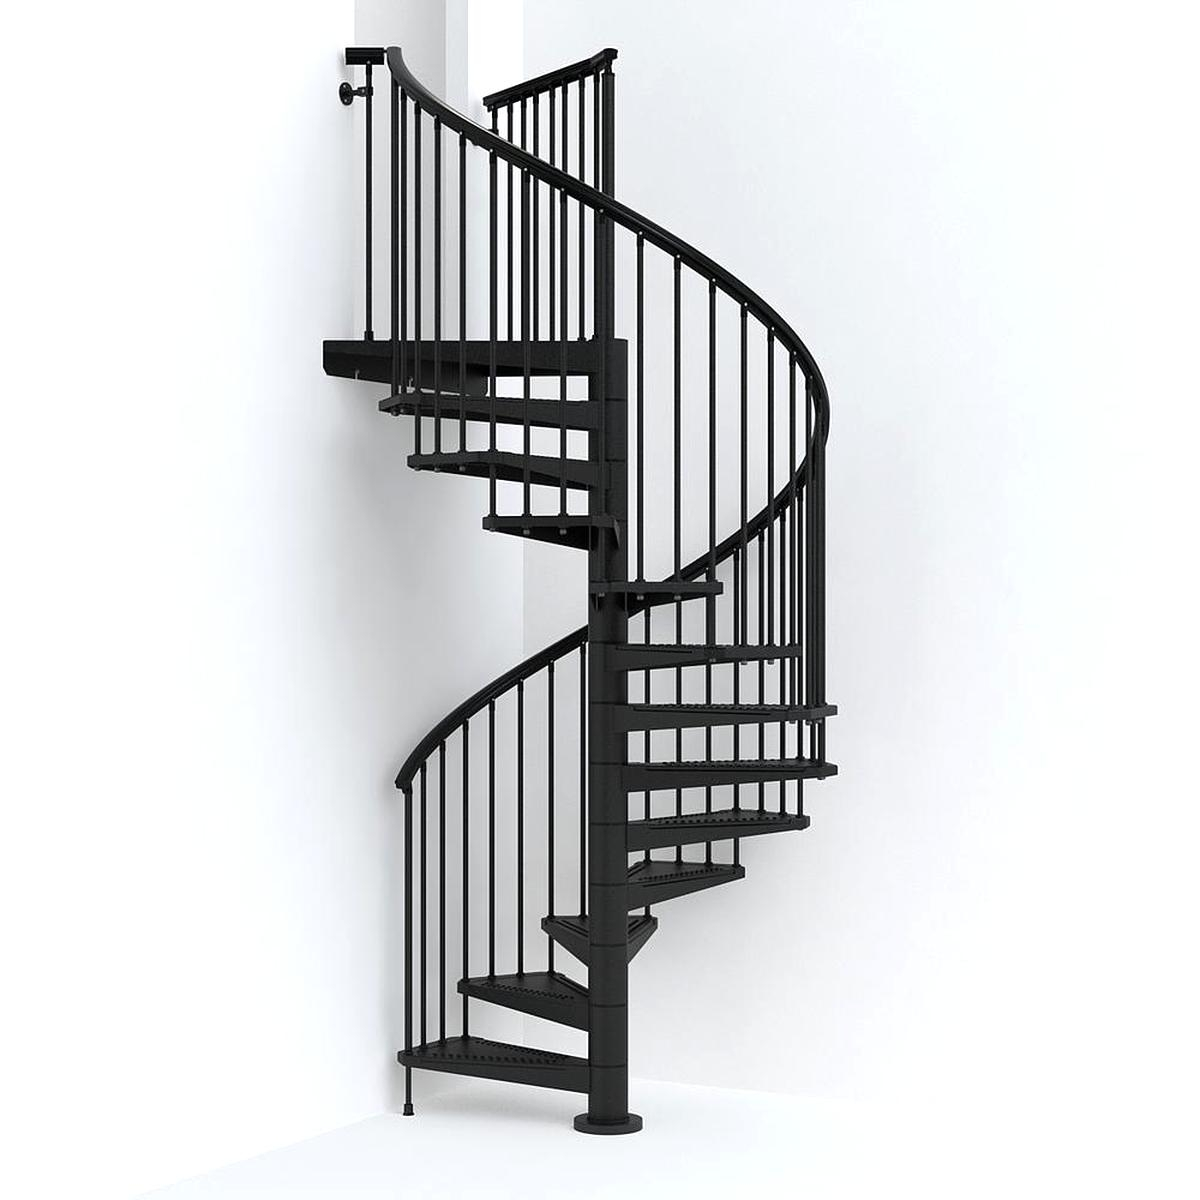 Spiral Staircase For Sale Only 2 Left At 65 | Wooden Spiral Staircase For Sale | Solid Wood | 36 Inch Diameter | Unique | Curved | Closed Riser